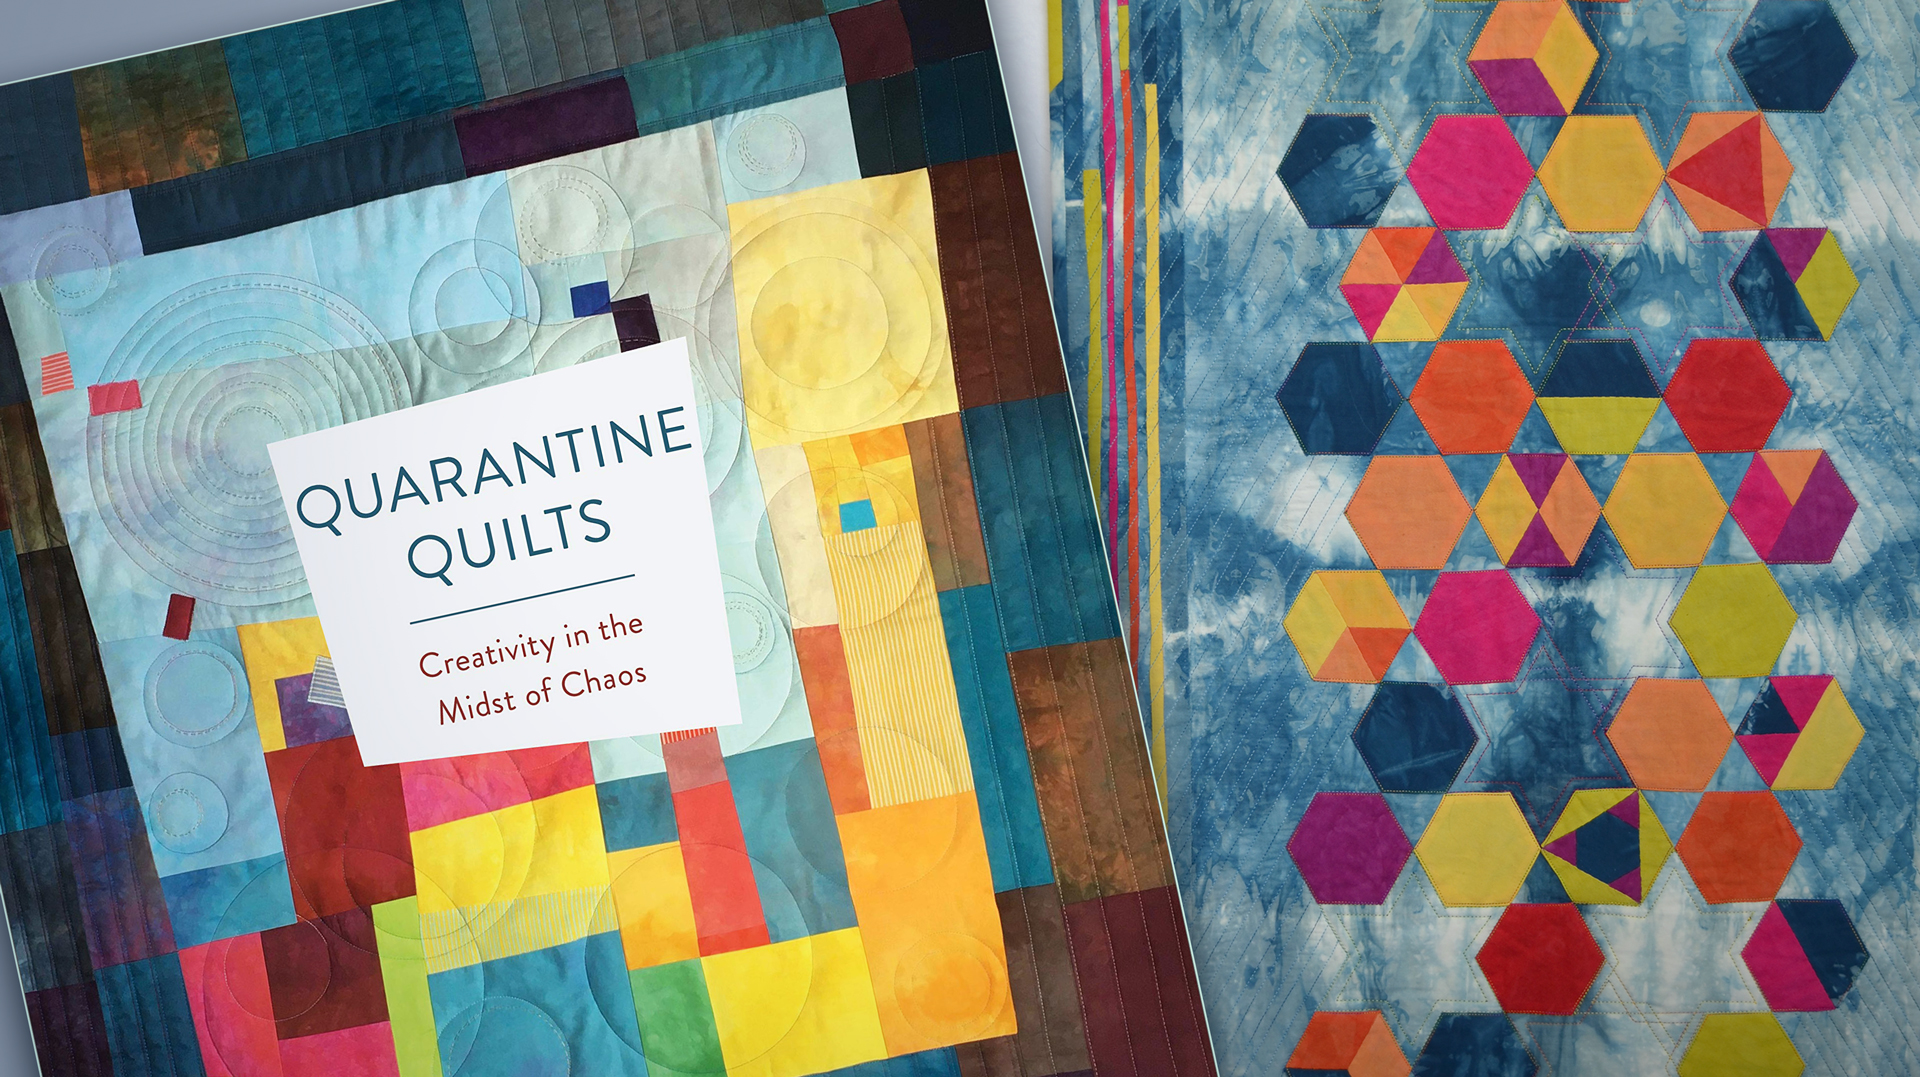 Quarantine Quilts: Creativity in the Midst of Chaos